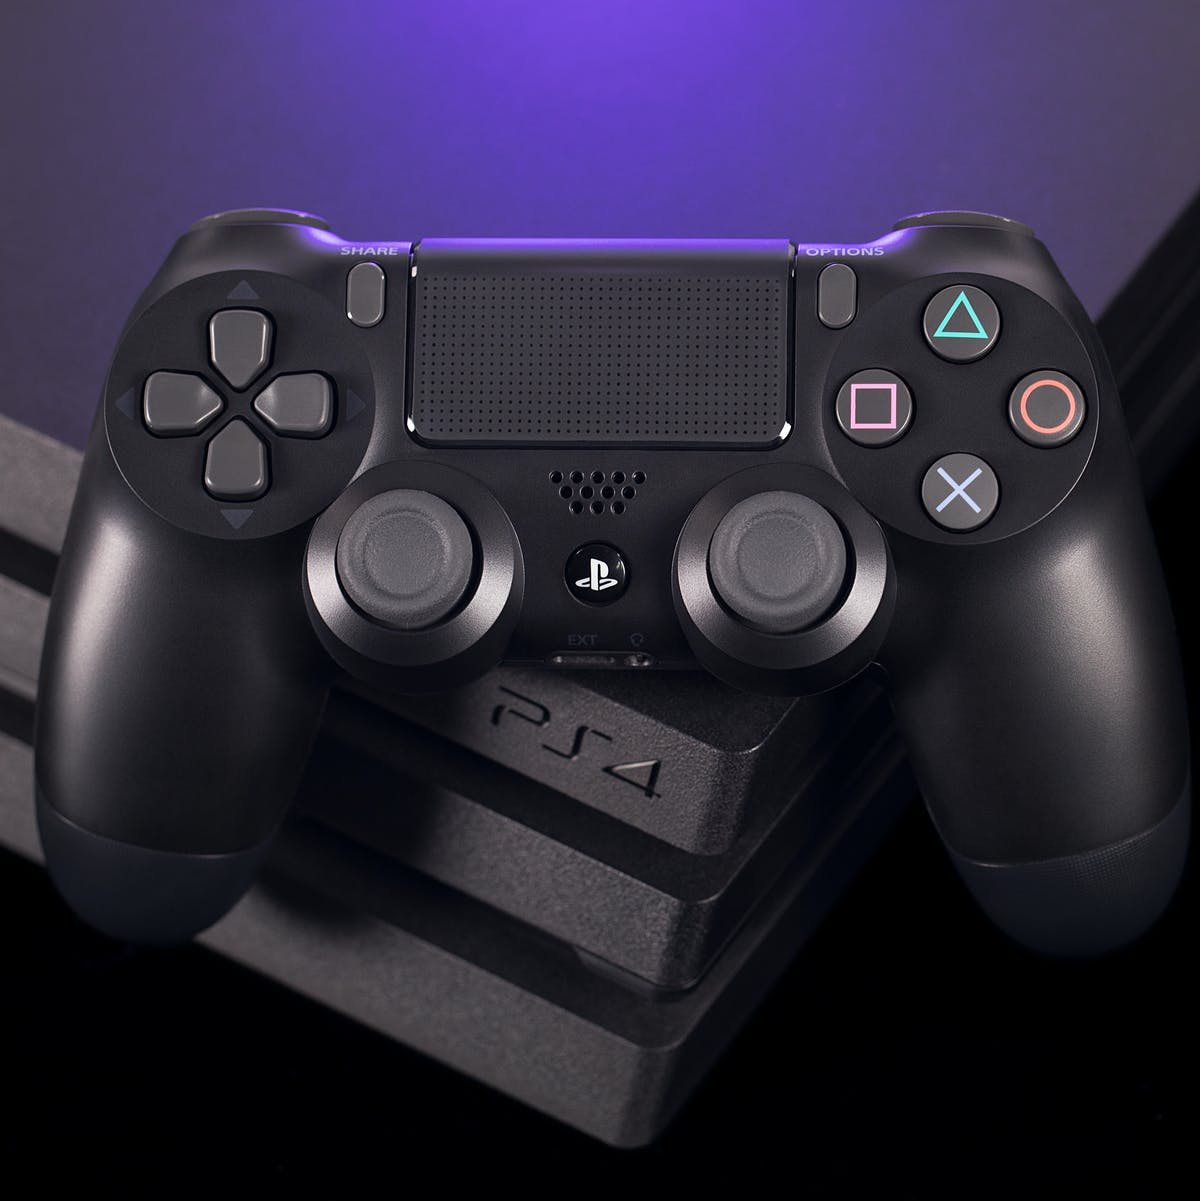 PS5 Specs: Haptic feedback, SSD and more features of Sony's next console